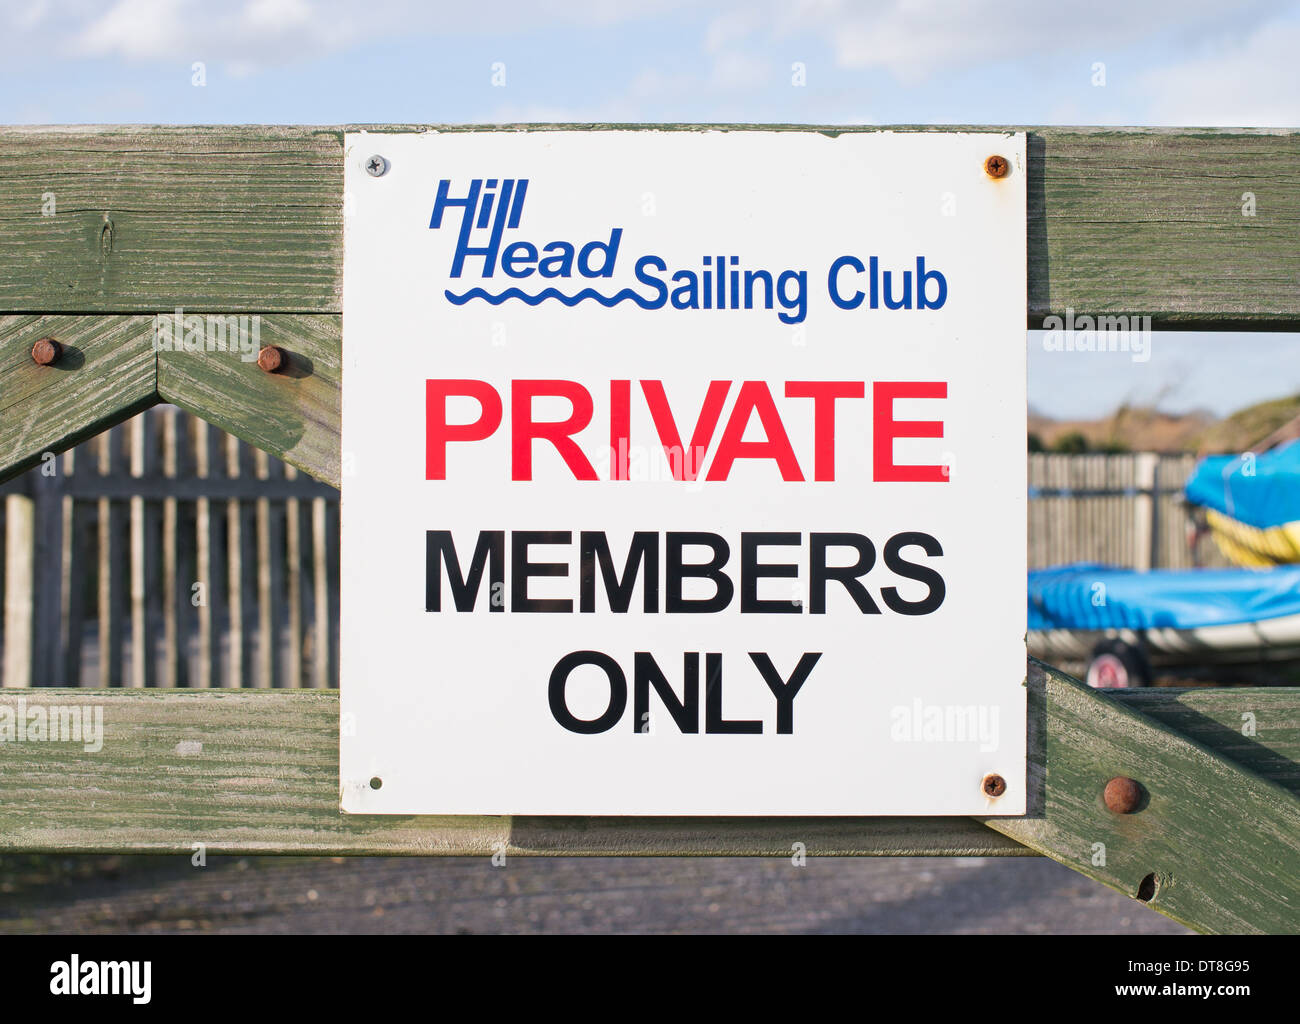 Sign Hill Head sailing club Private members only Titchfield Haven southern England UK - Stock Image